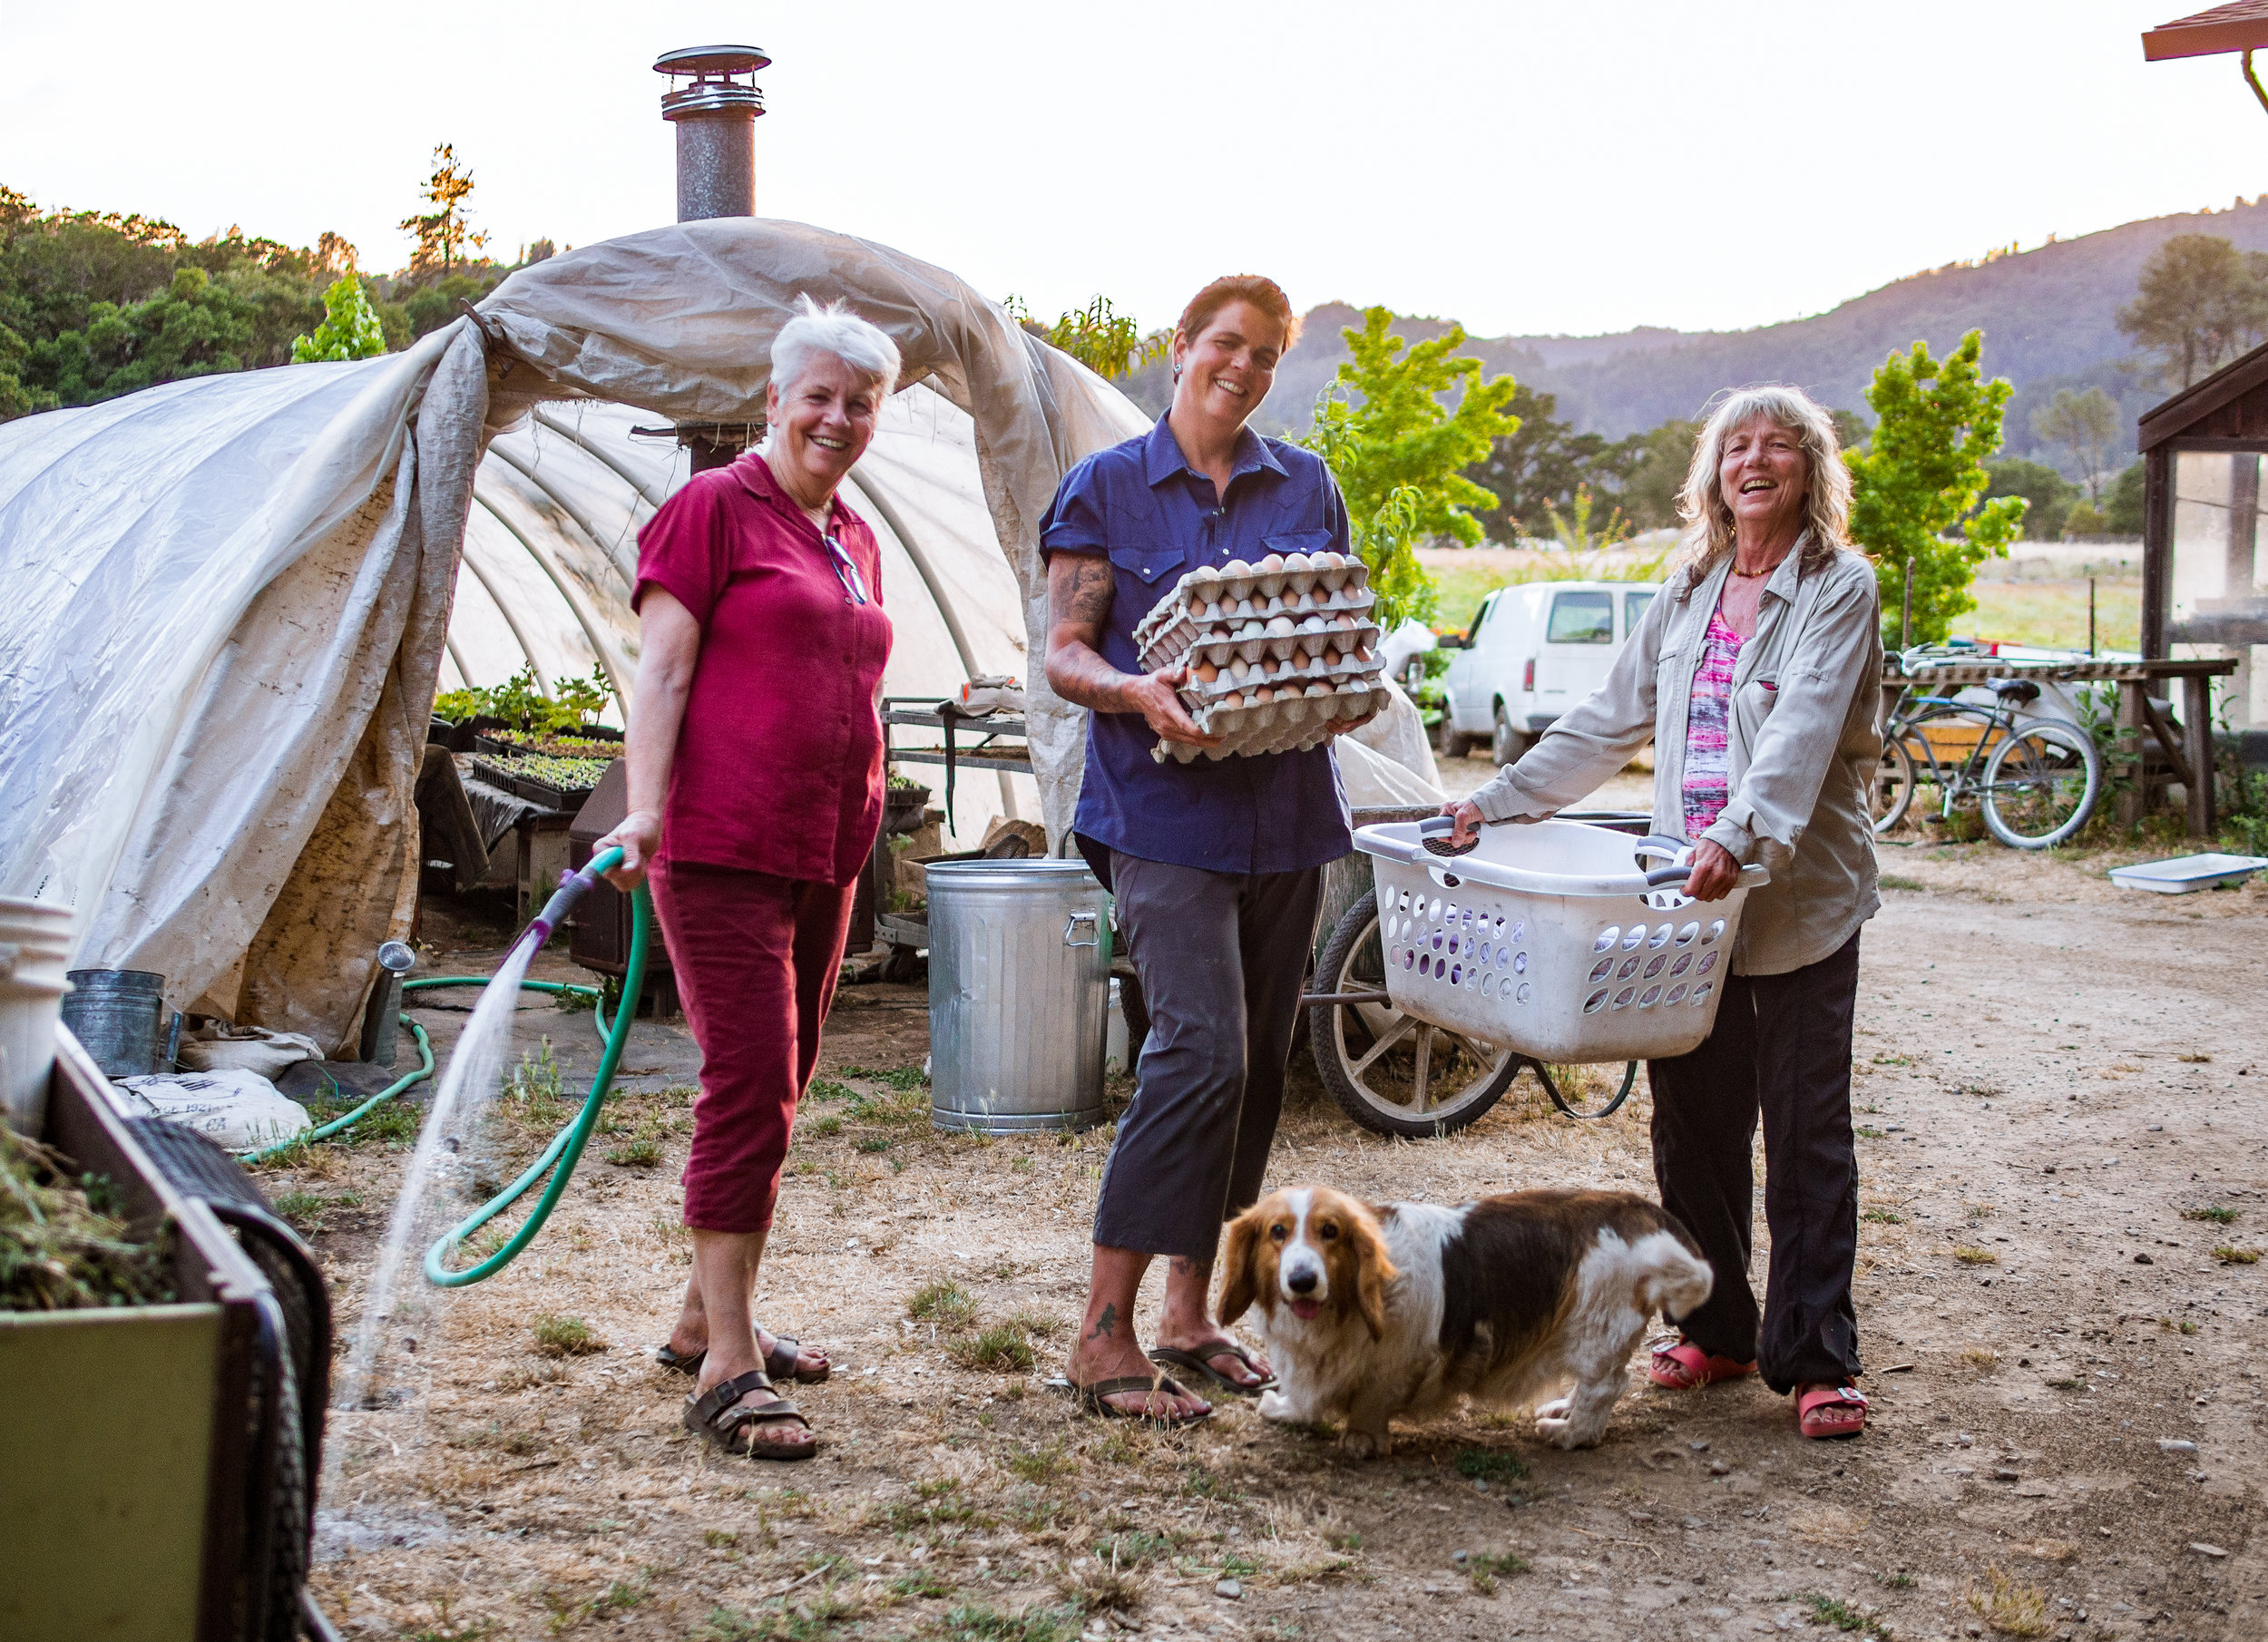 Tam, her daughter Kashaya, Lucy the masseuse, and Truckee the farm dog.